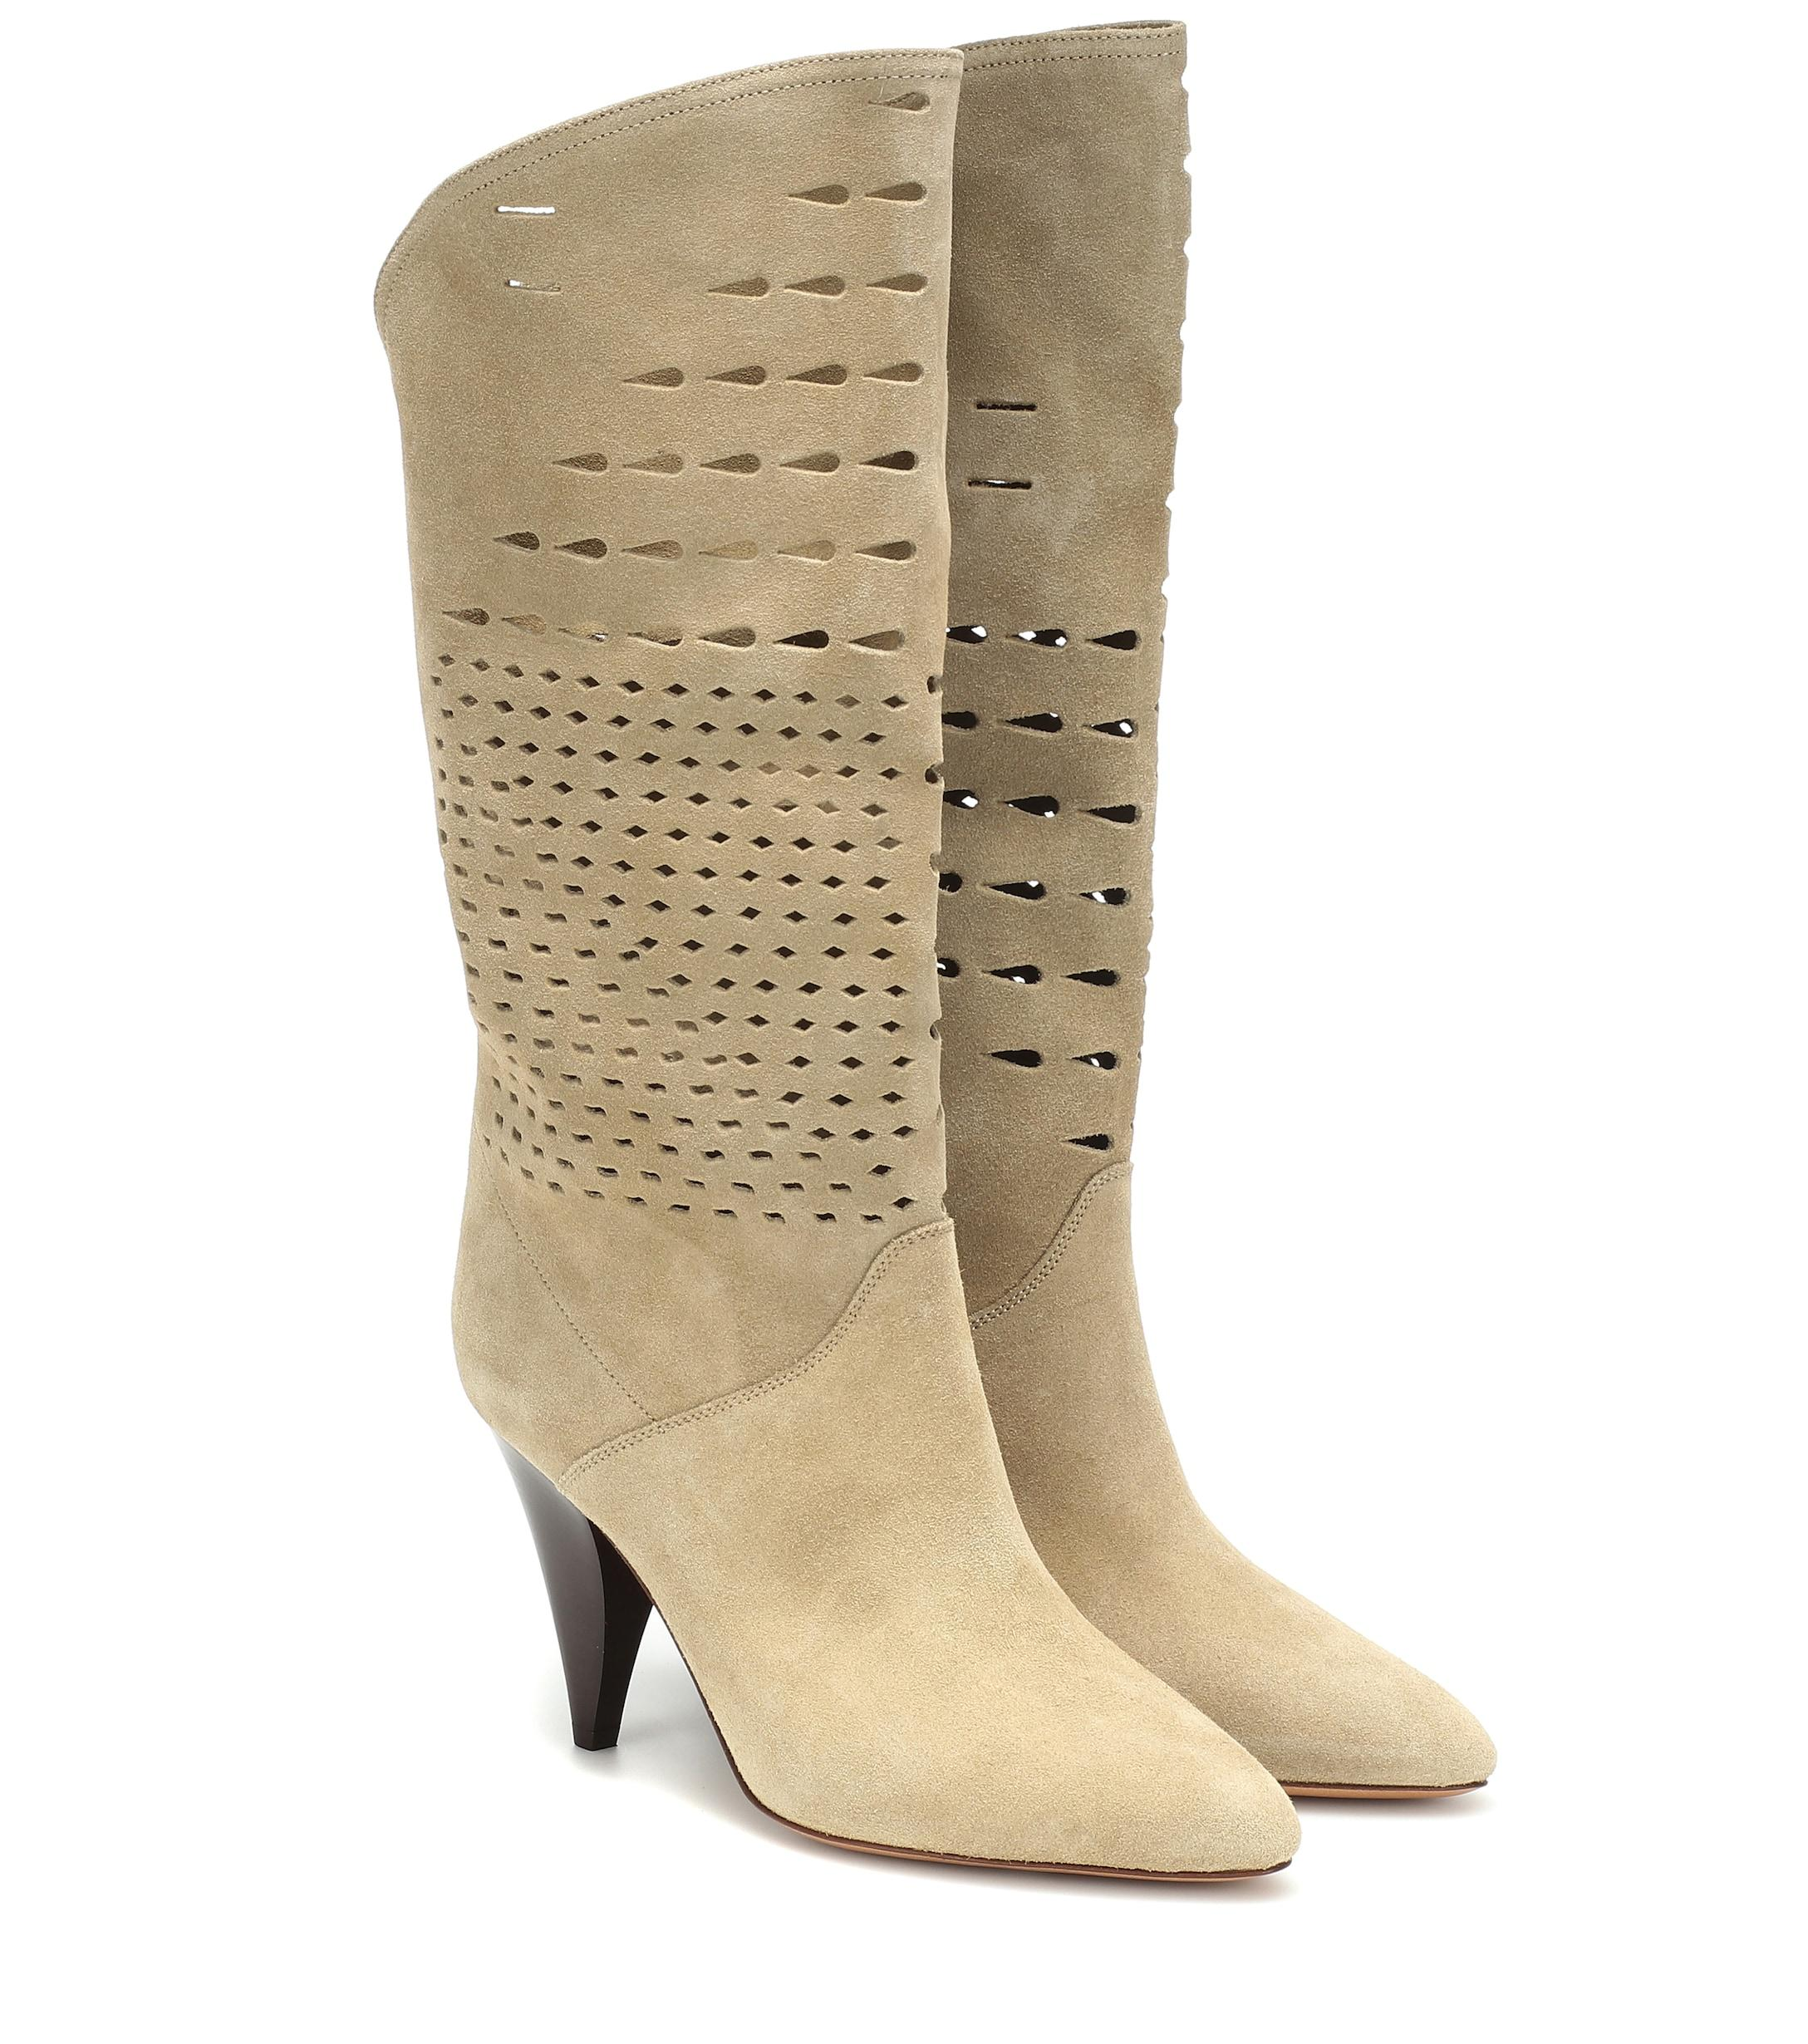 291a1797b2a Lyst - Isabel Marant Lurrey Suede Boots in Natural